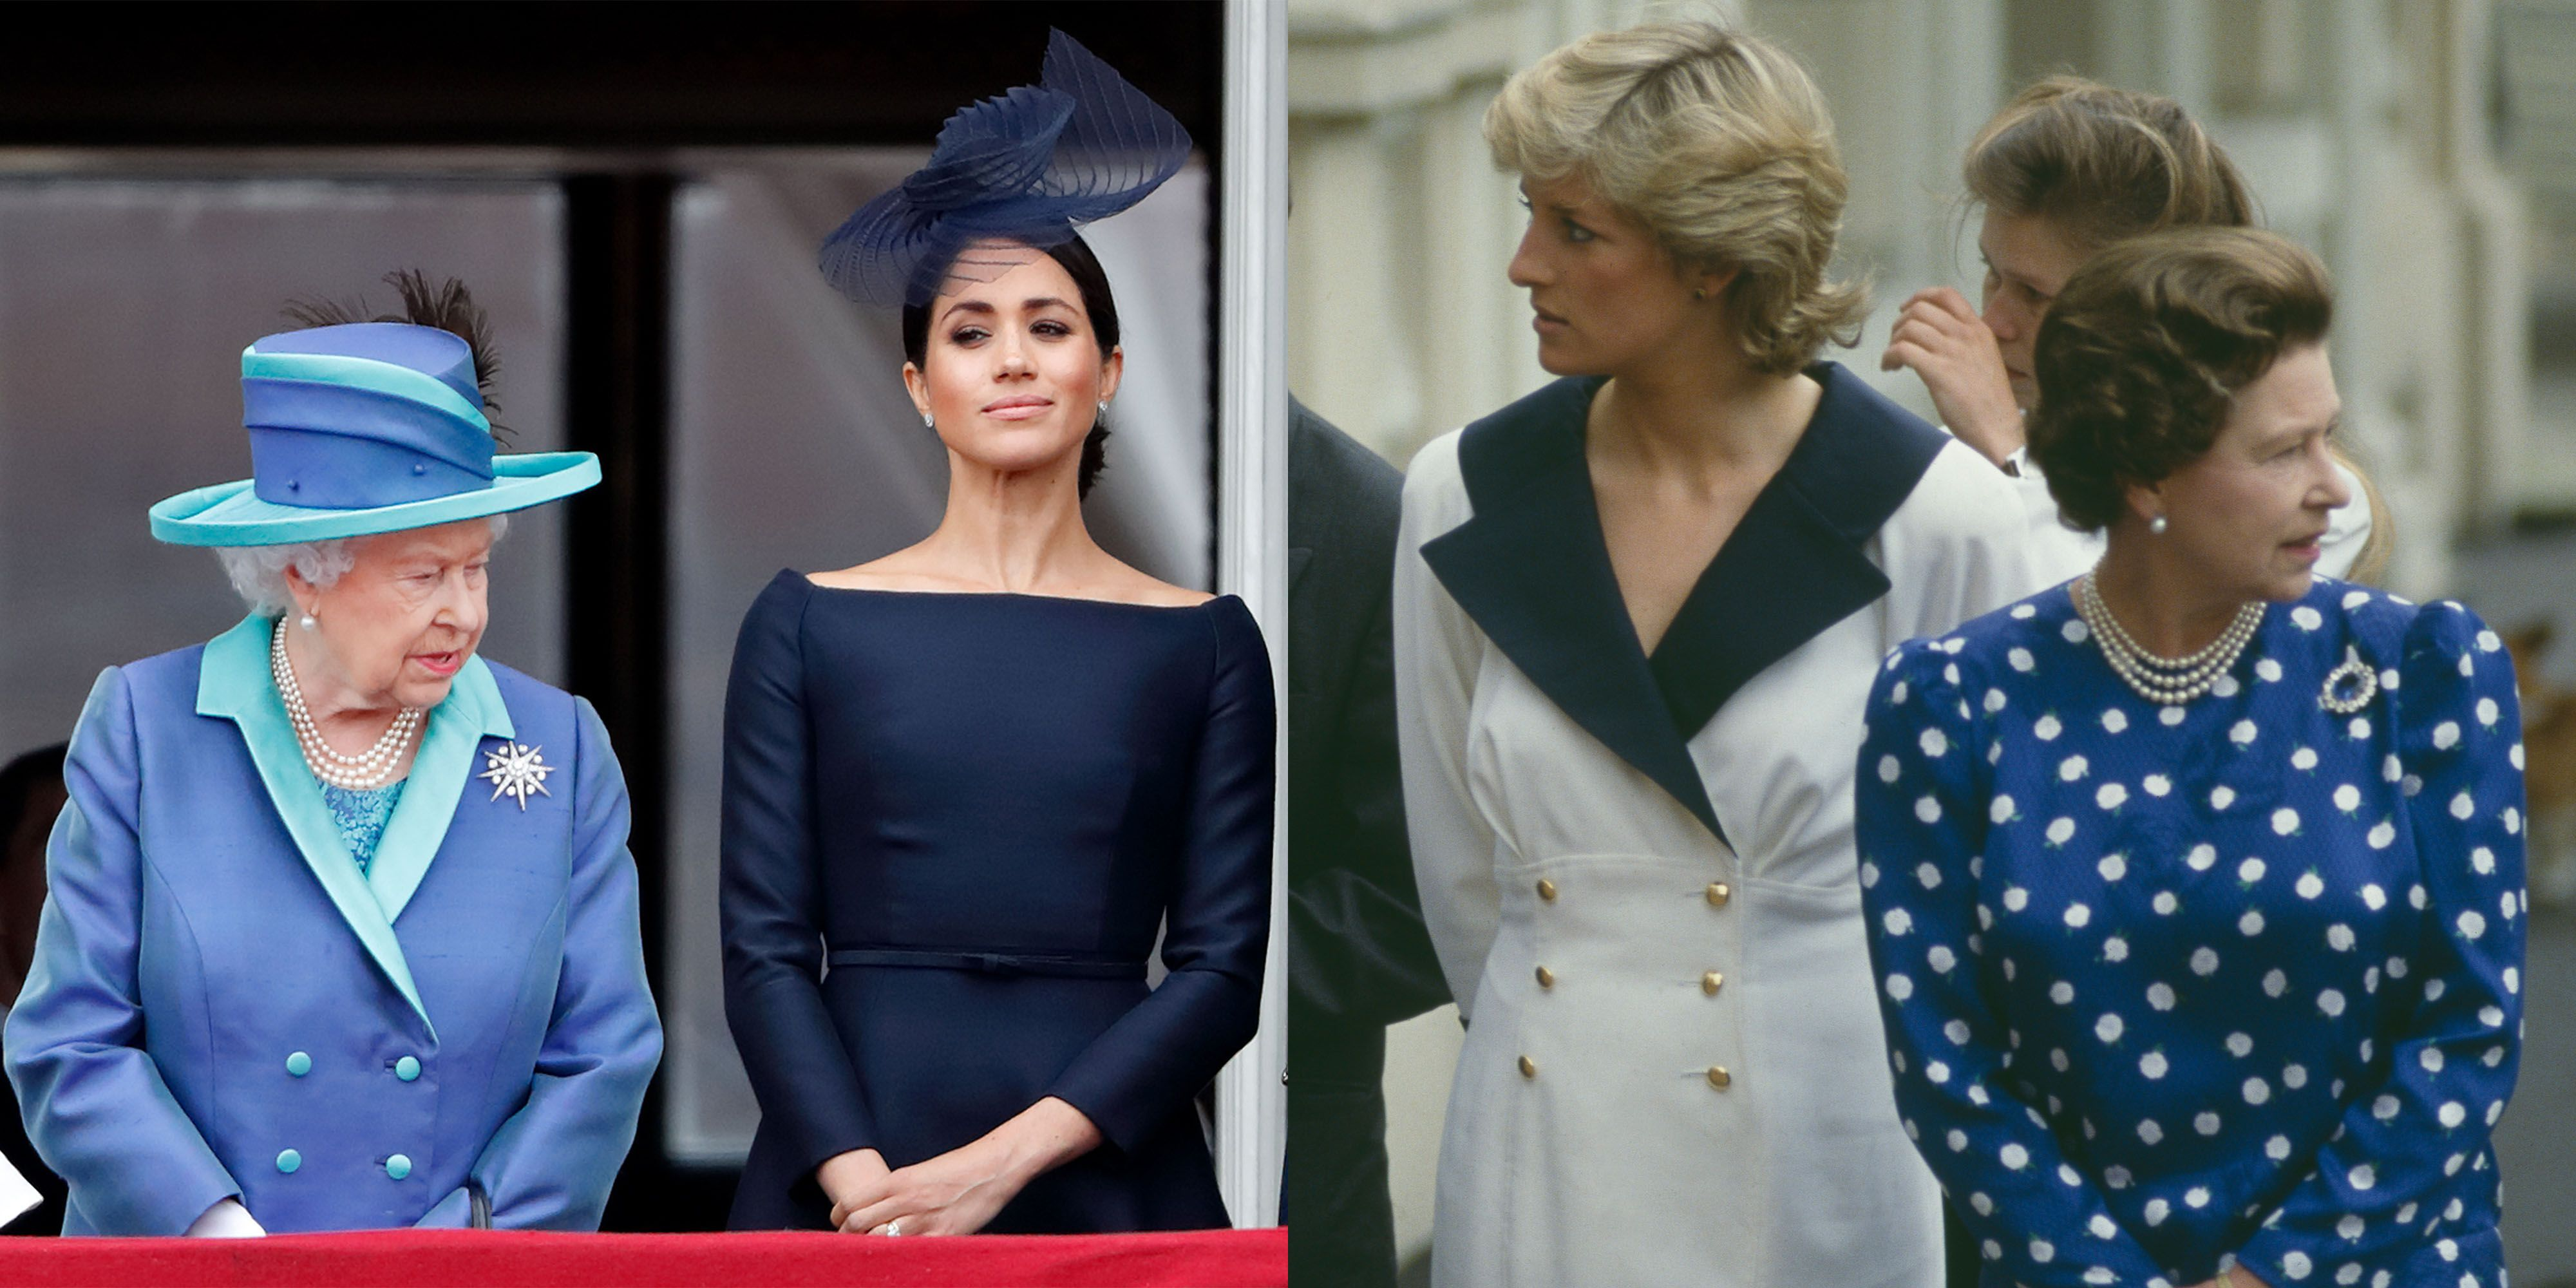 """Meghan Markle and Princess Diana """"Both Wanted Something from the Queen They Didn't Get,"""" Royal Expert Says"""